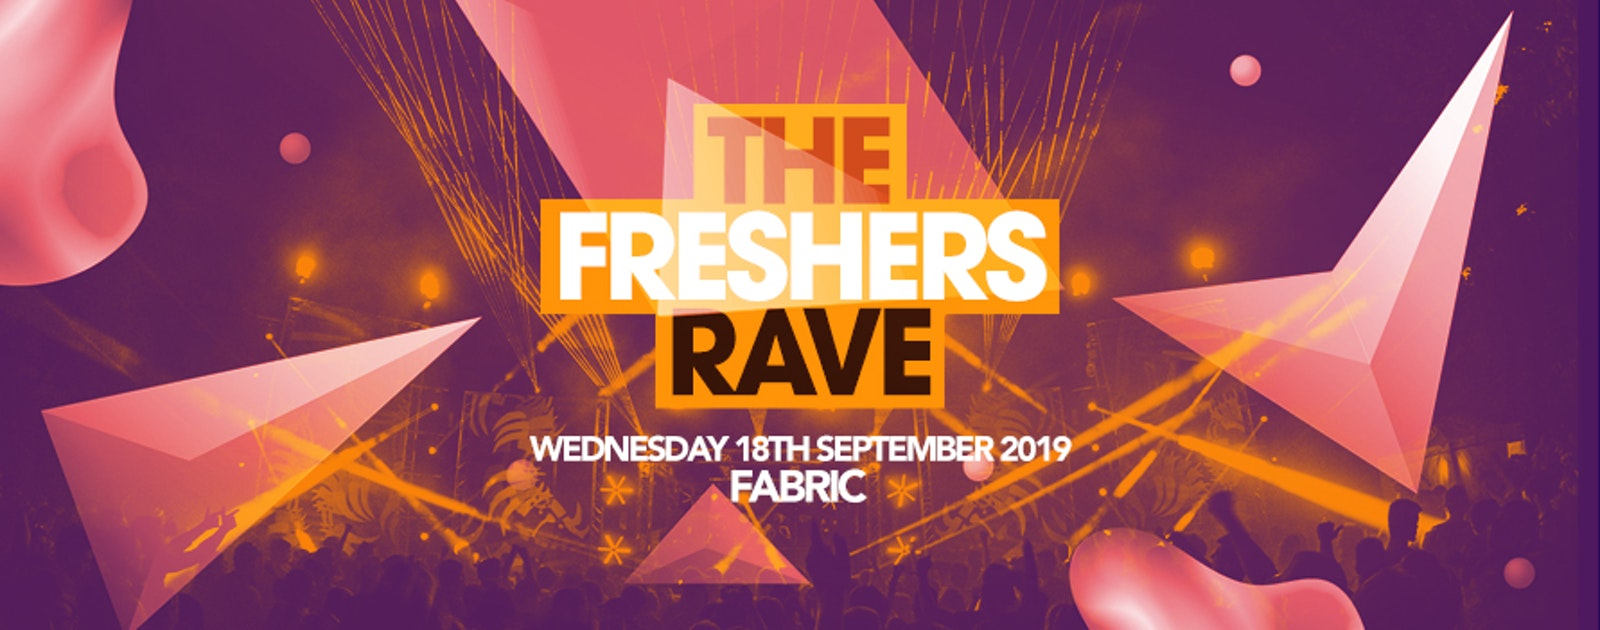 THE 2019 FRESHERS RAVE // FABRIC LONDON